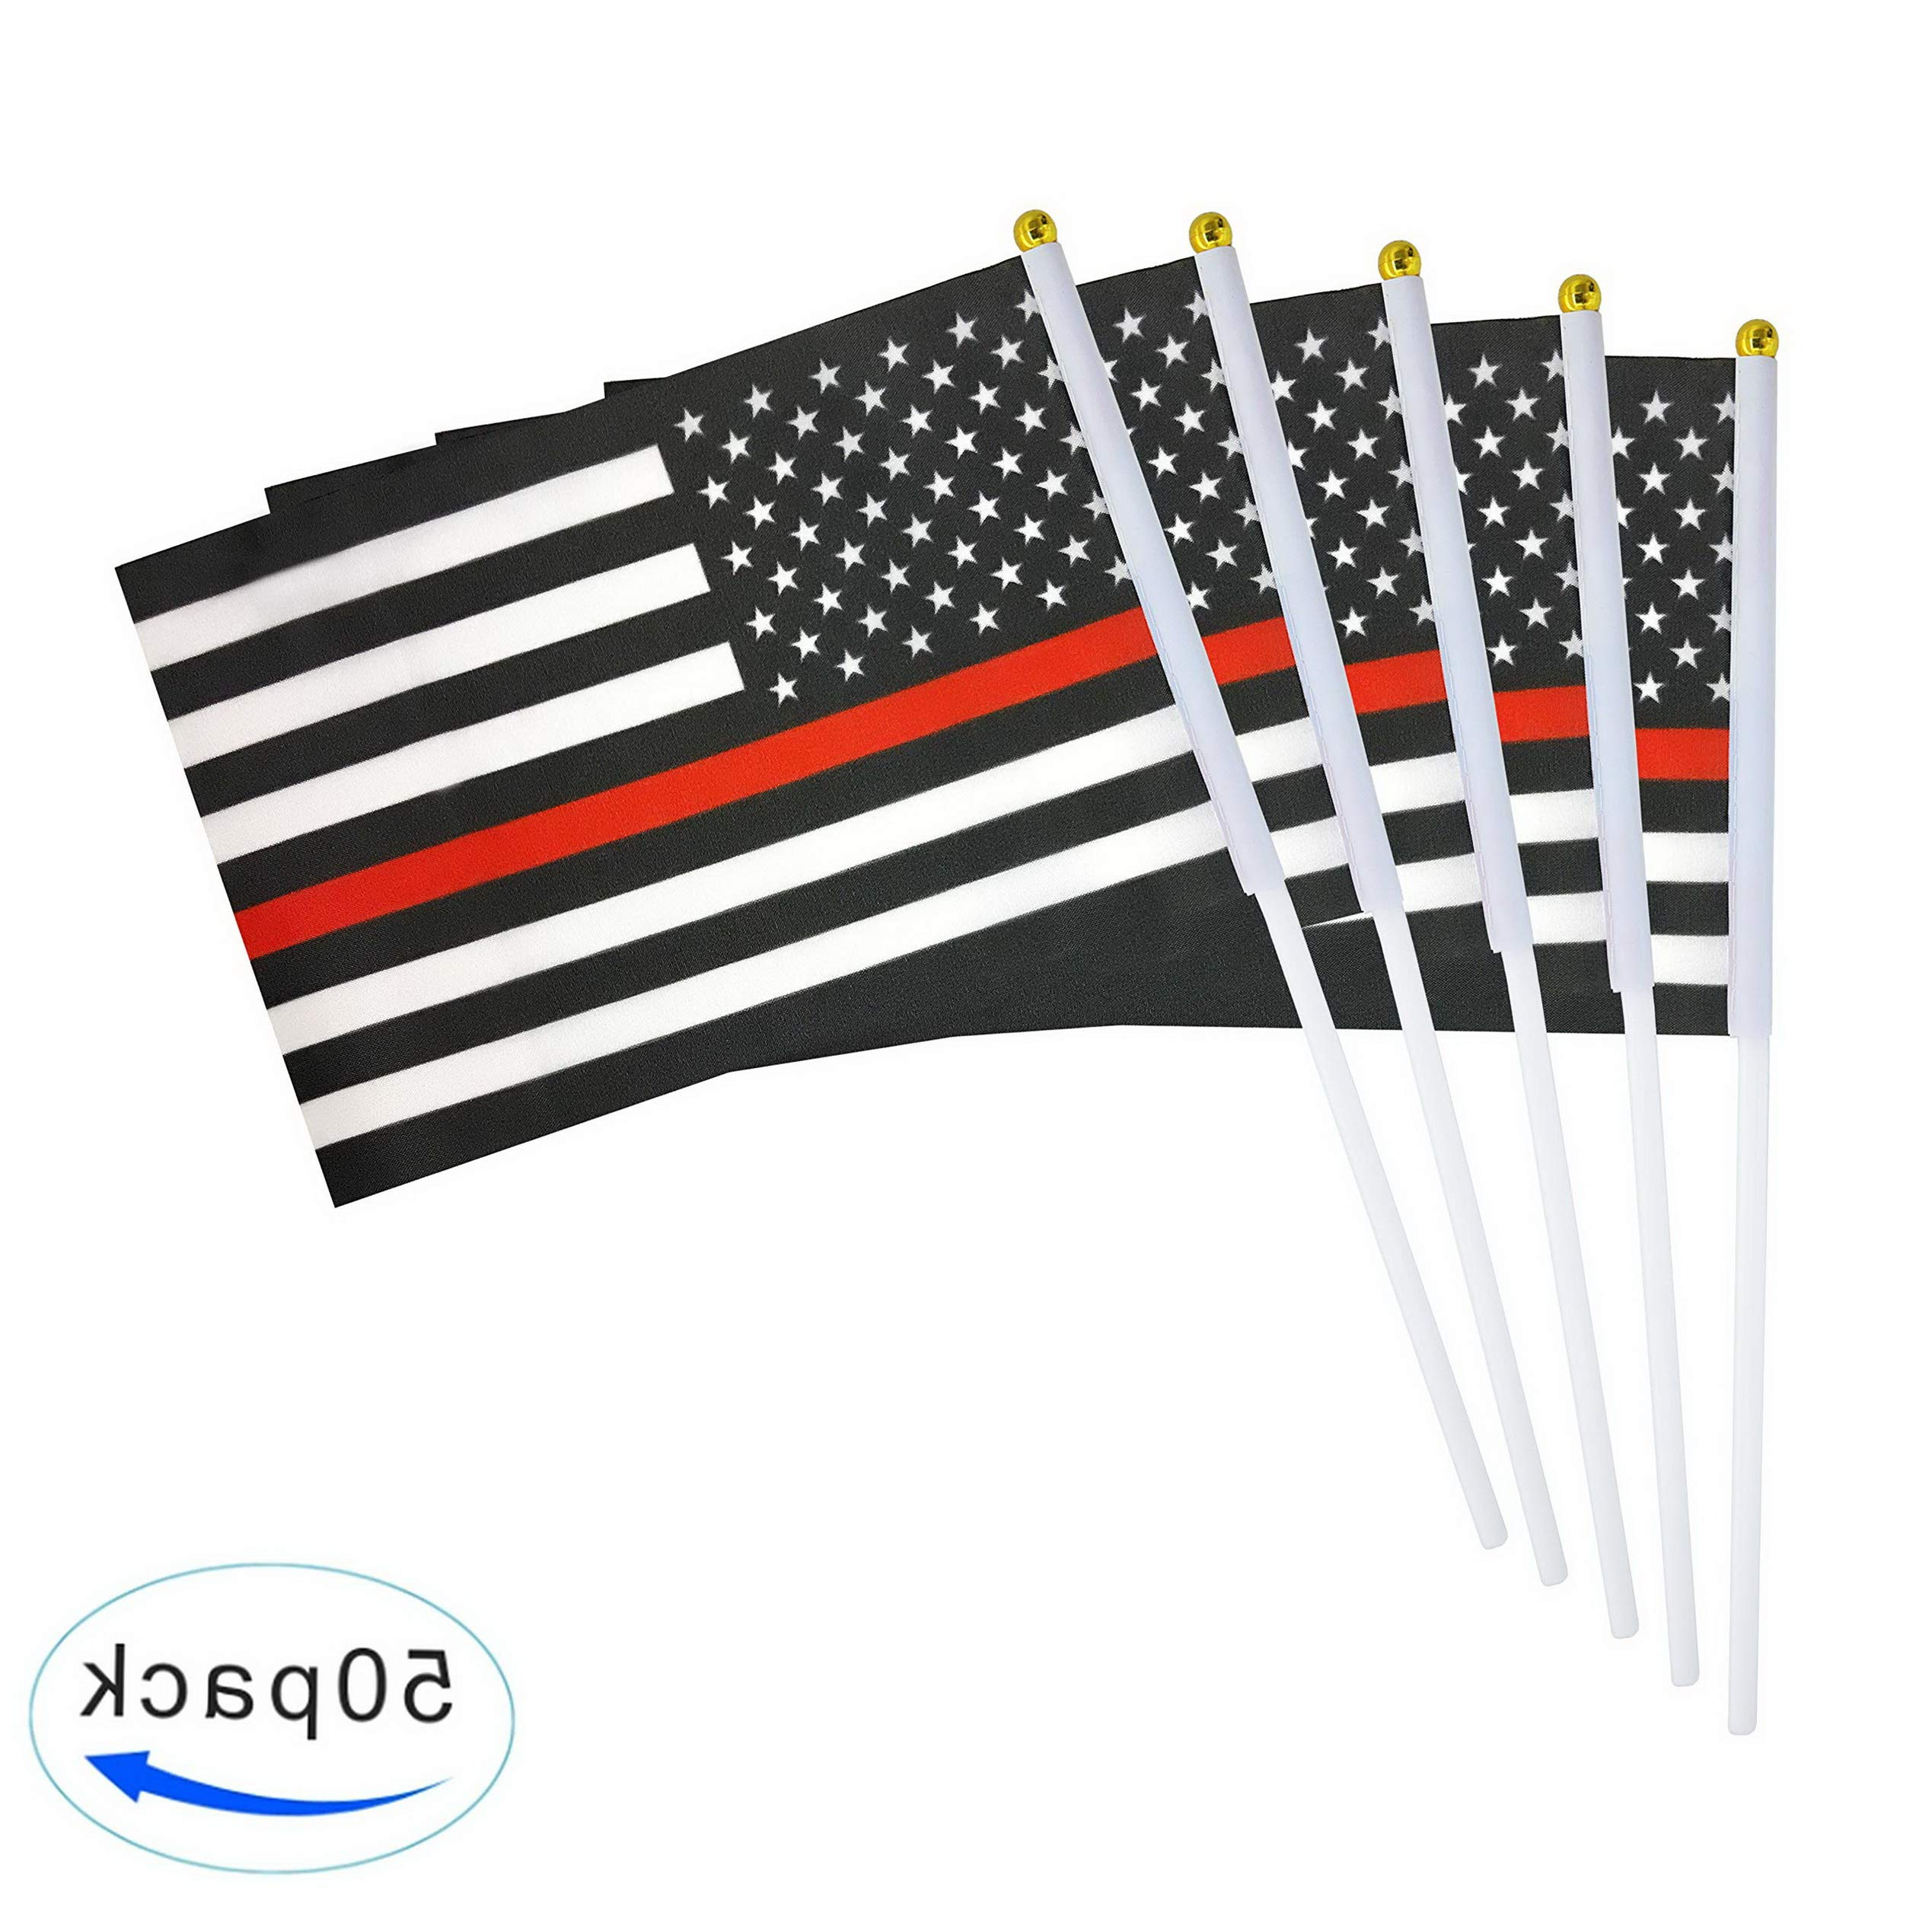 Werrox TSMD Thin Red Line American Firefighter Flag 50 Pack Small Mini Hand Held Polyester Flags On Stick,Firefighter Theme Party Event Decorations | Model FLG - 1338 | 8.2'' x 5.5'',11.8'' by Werrox